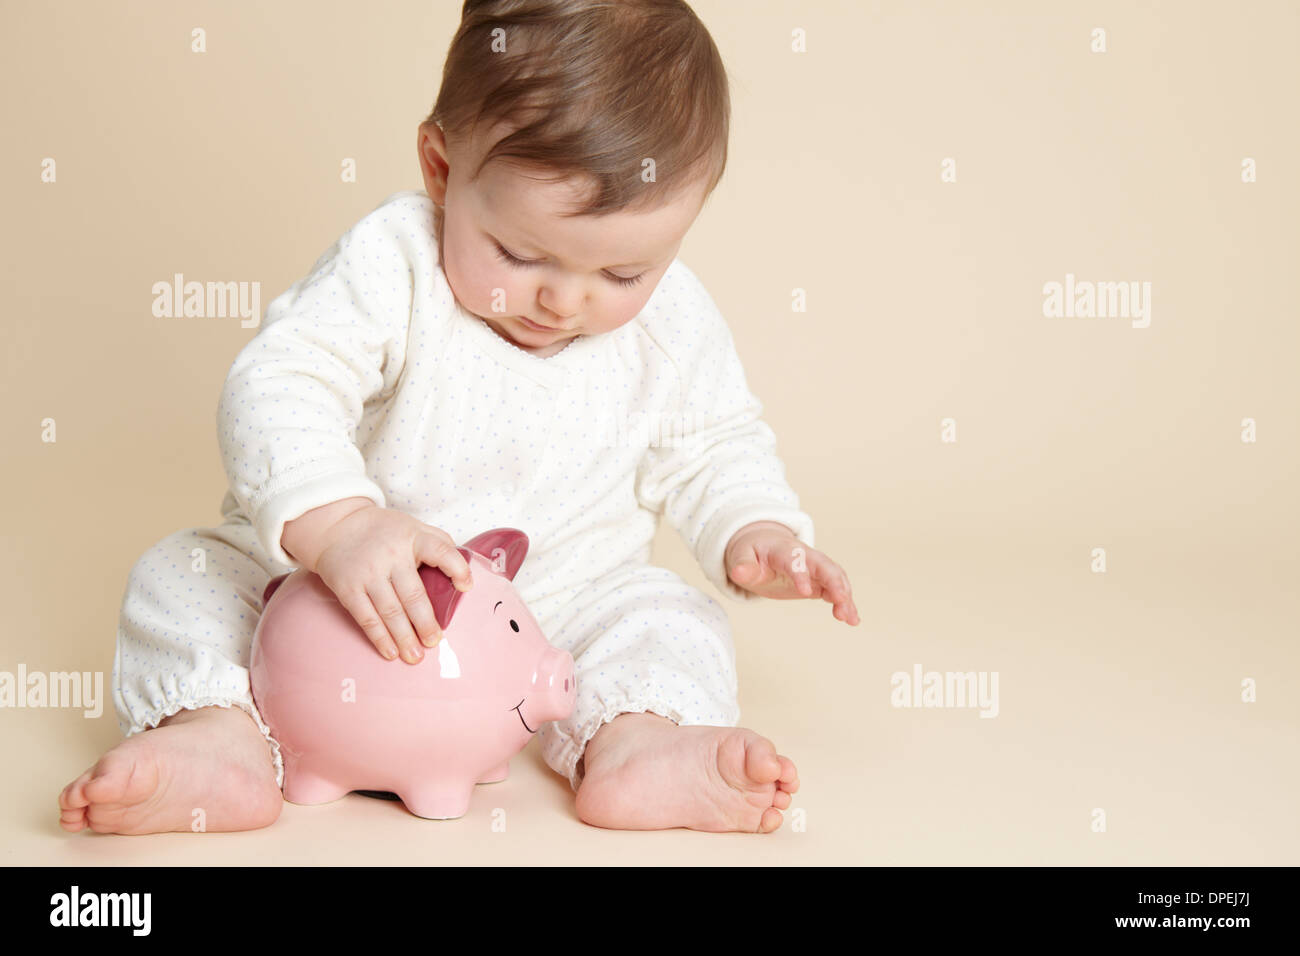 Studio portrait of baby girl playing with piggy bank - Stock Image